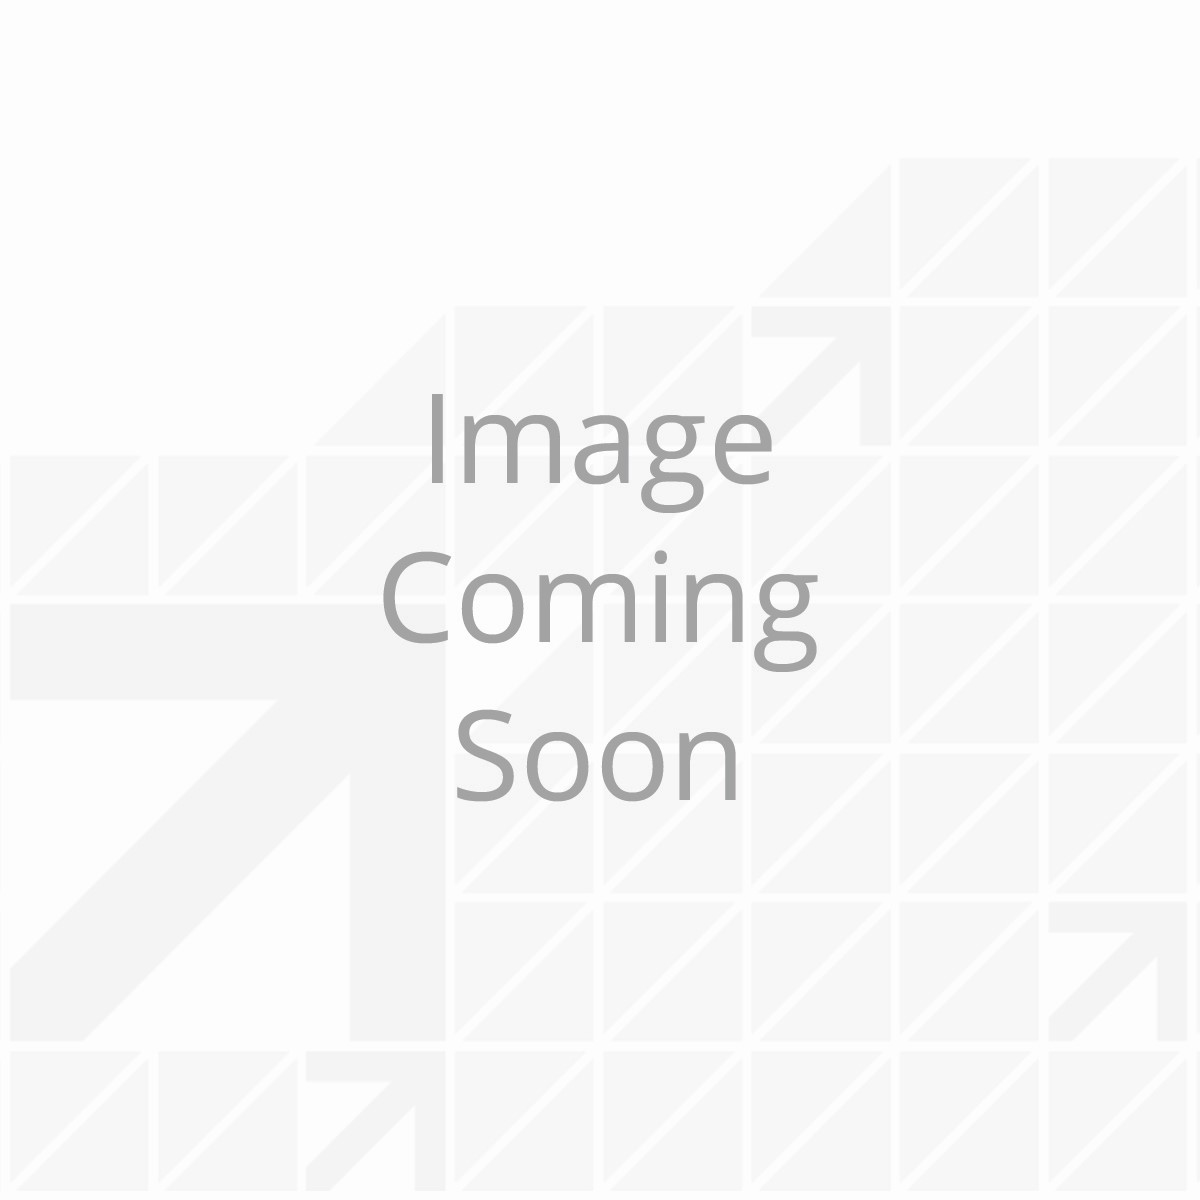 Motor and Switch Kits for Electric Landing Gear